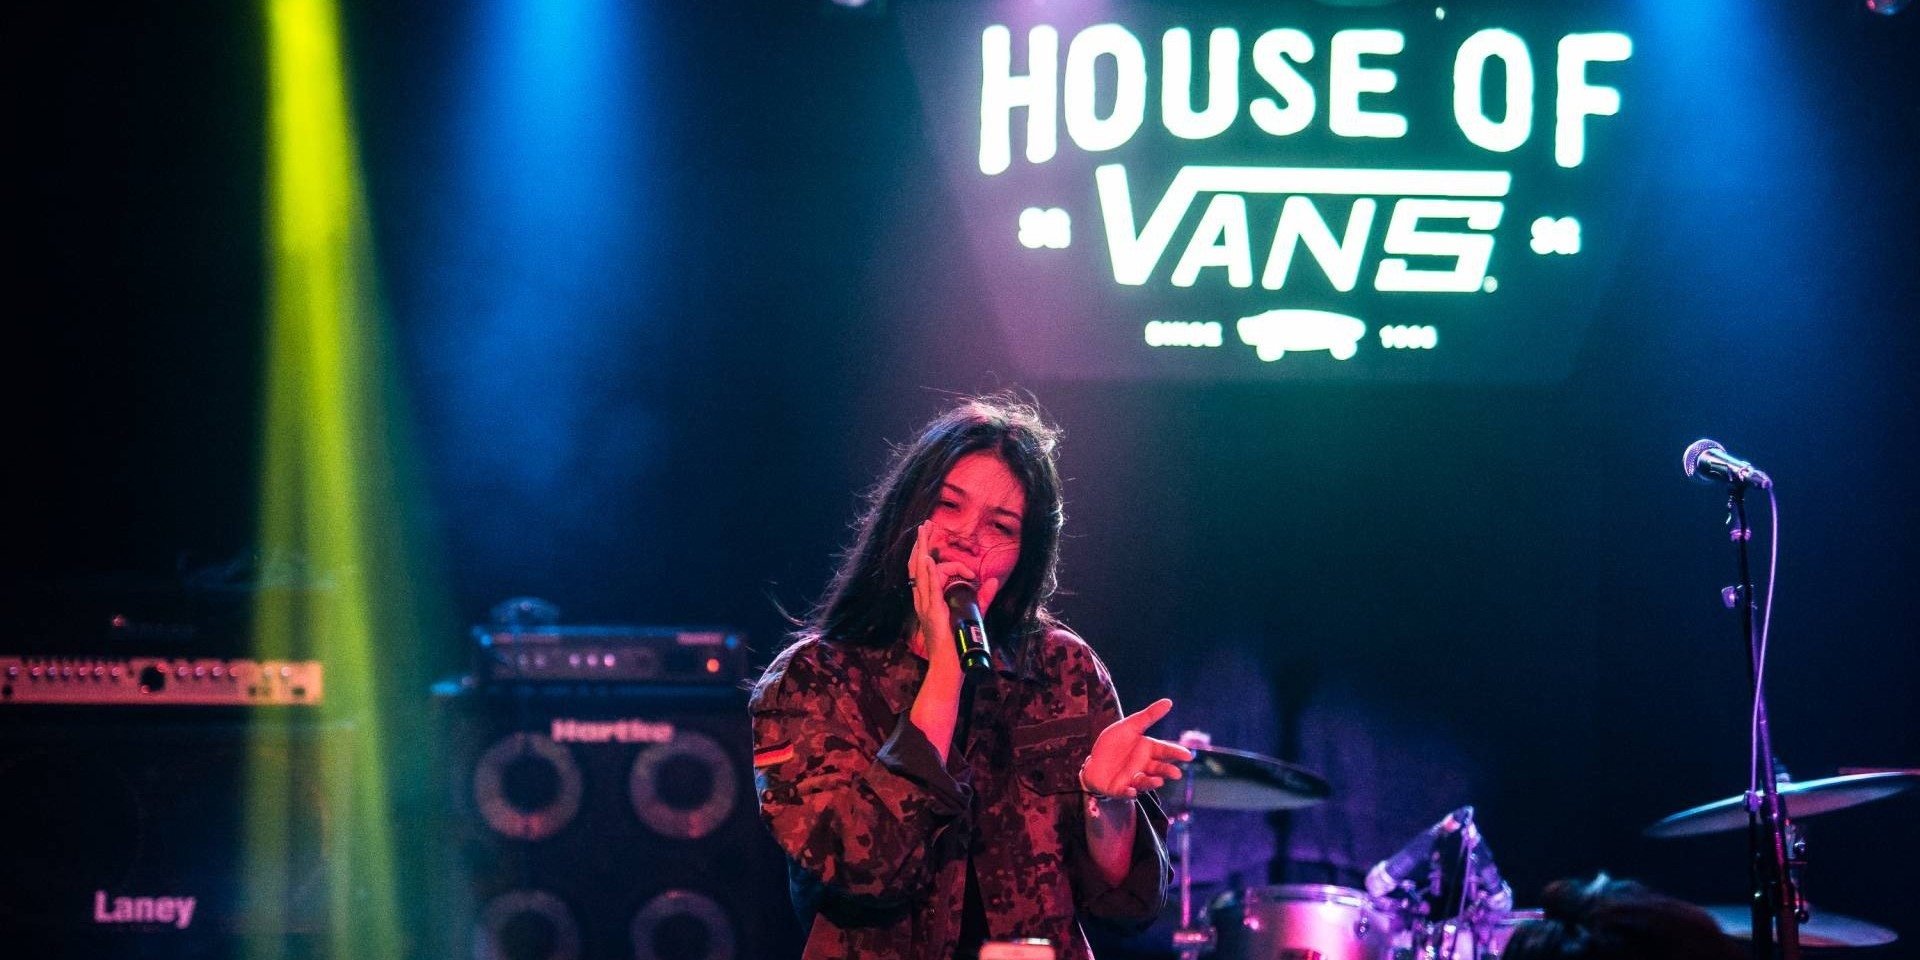 Vans Musicians Wanted 2018: Shye triumphs, Axel Brizzy and The Groove Gurus impress & more